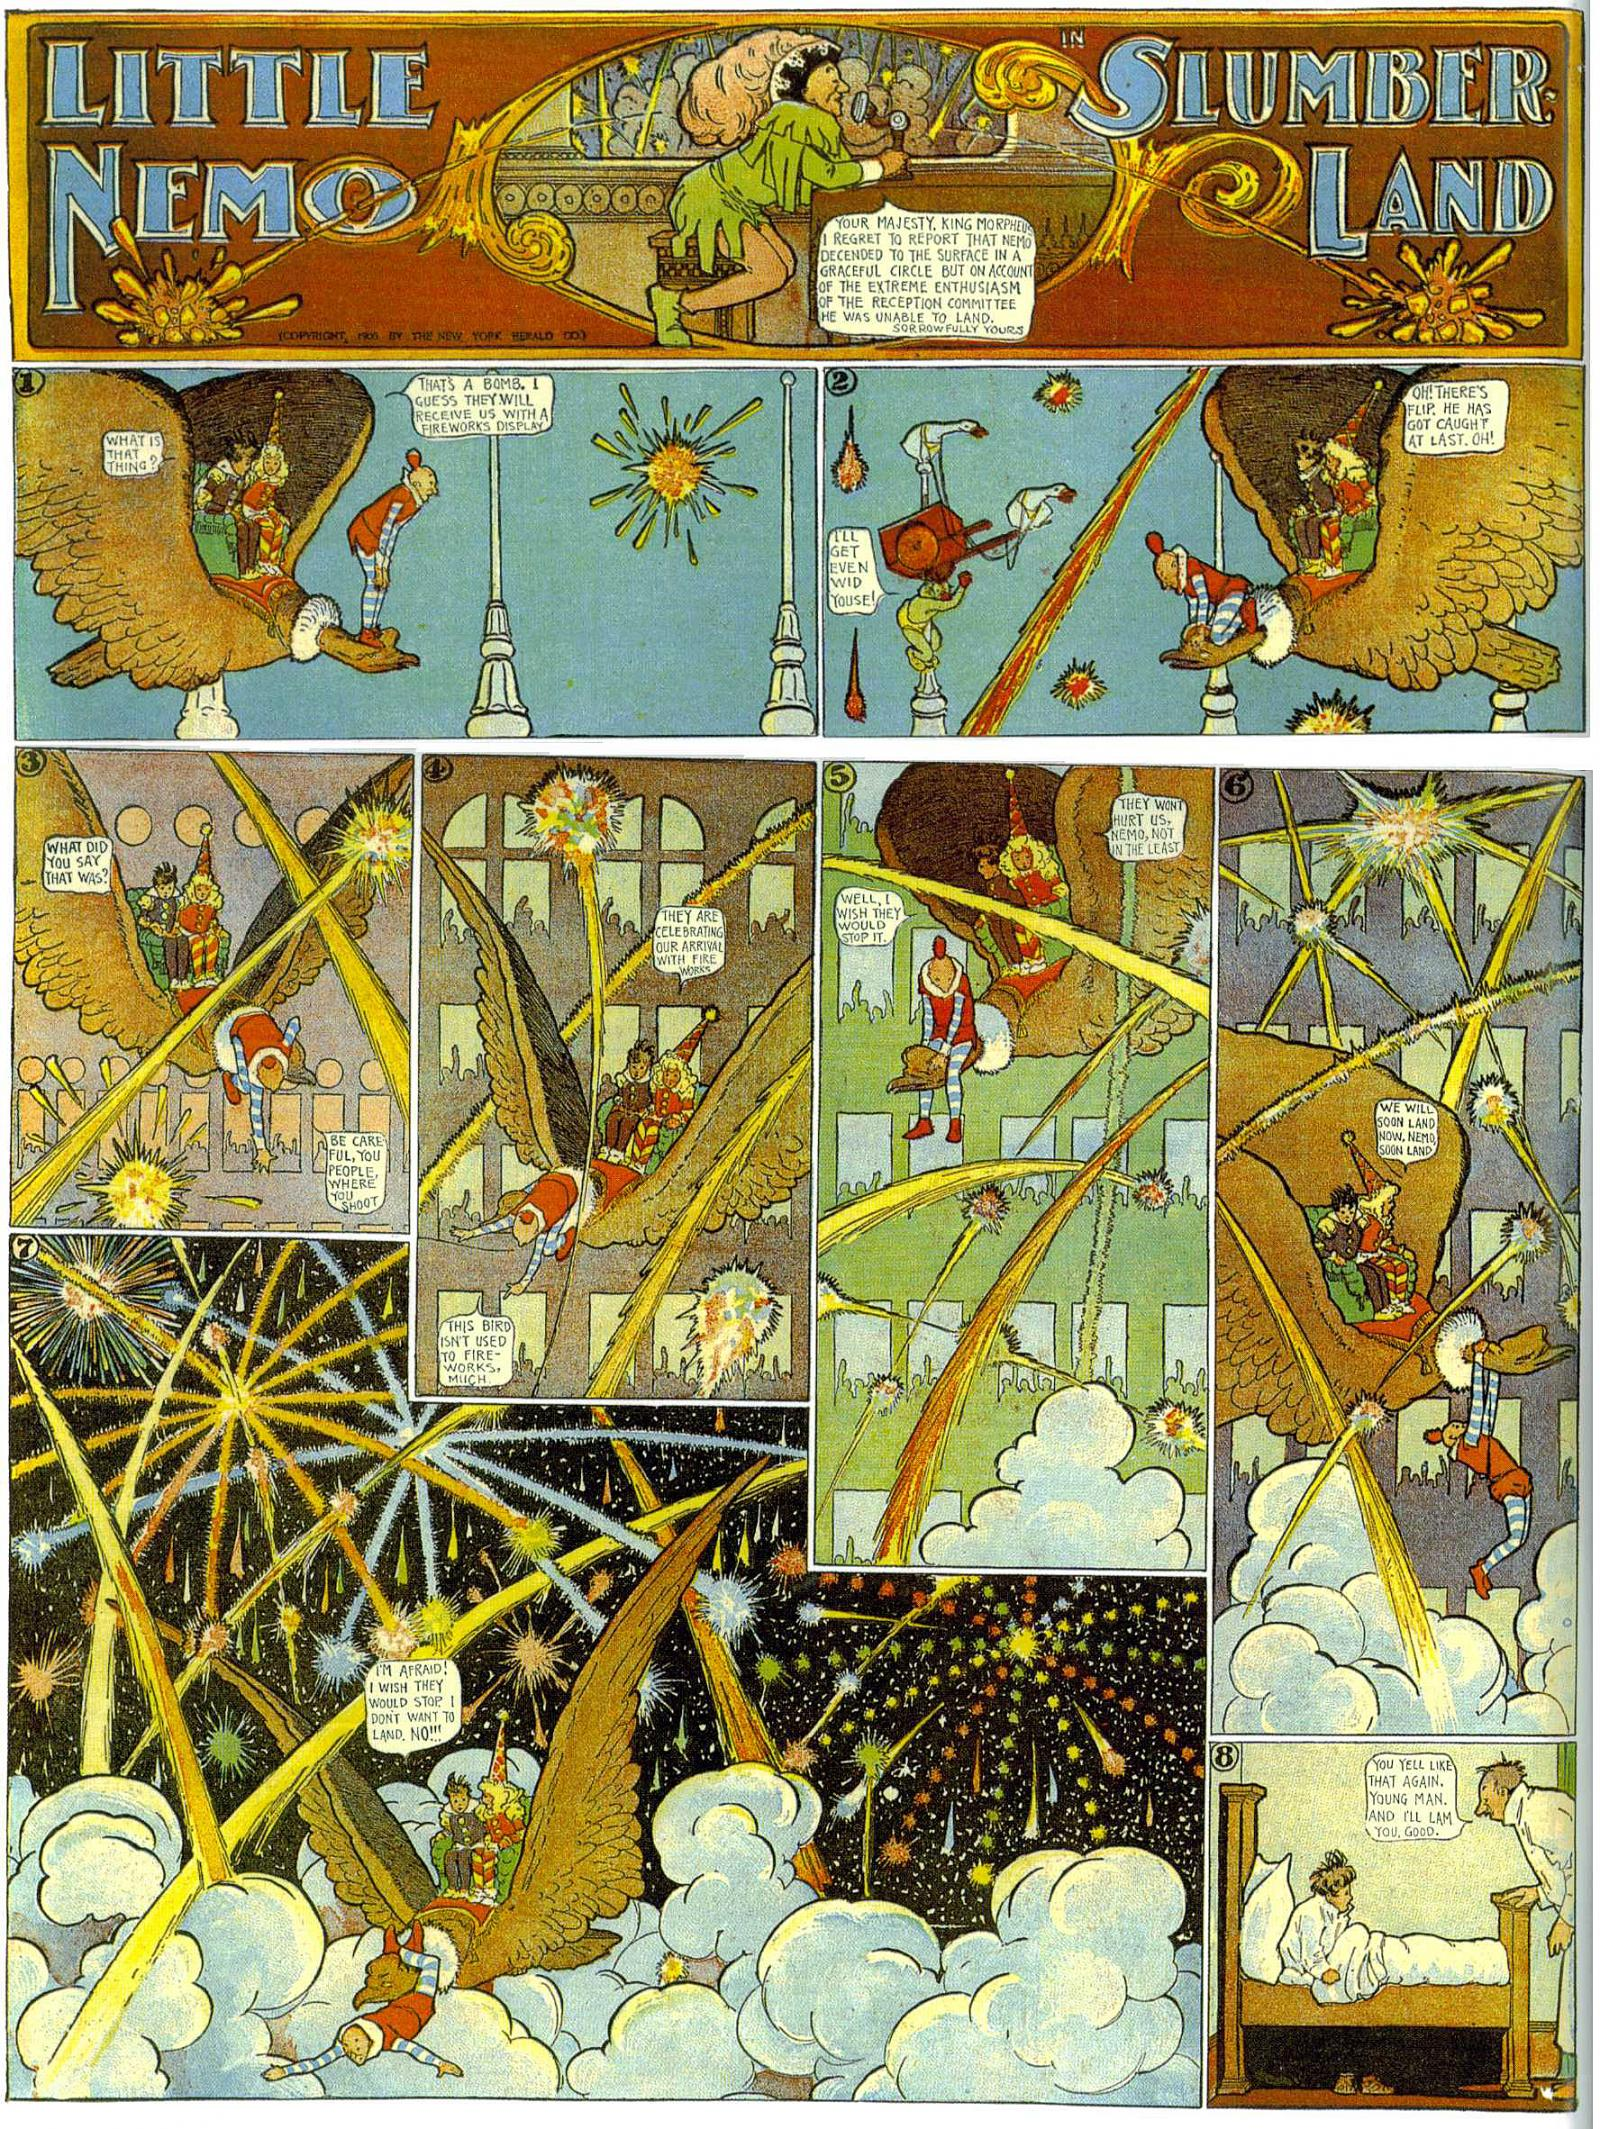 Little Nemo in Slumberland by Winsor McCay